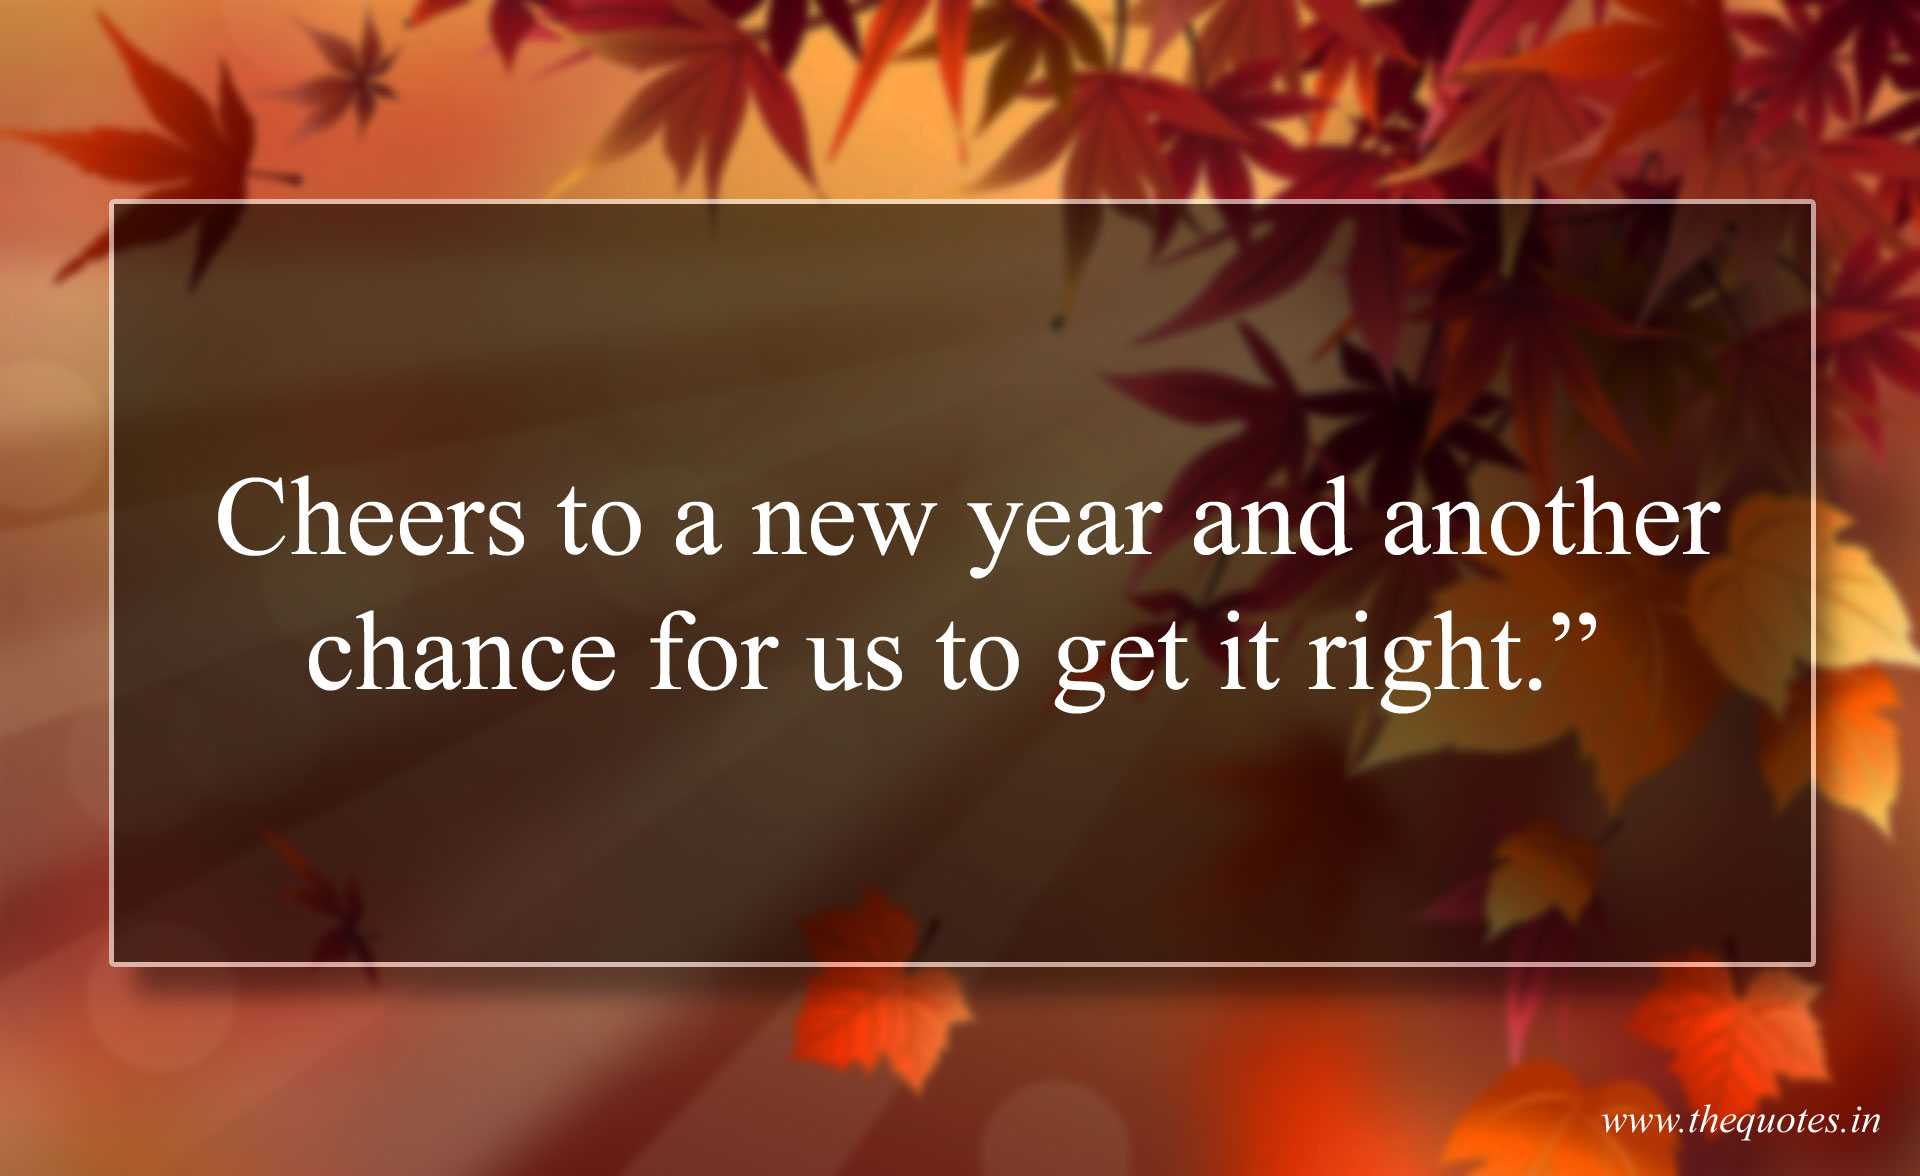 Cheers To A New Year Quotes Tumblr